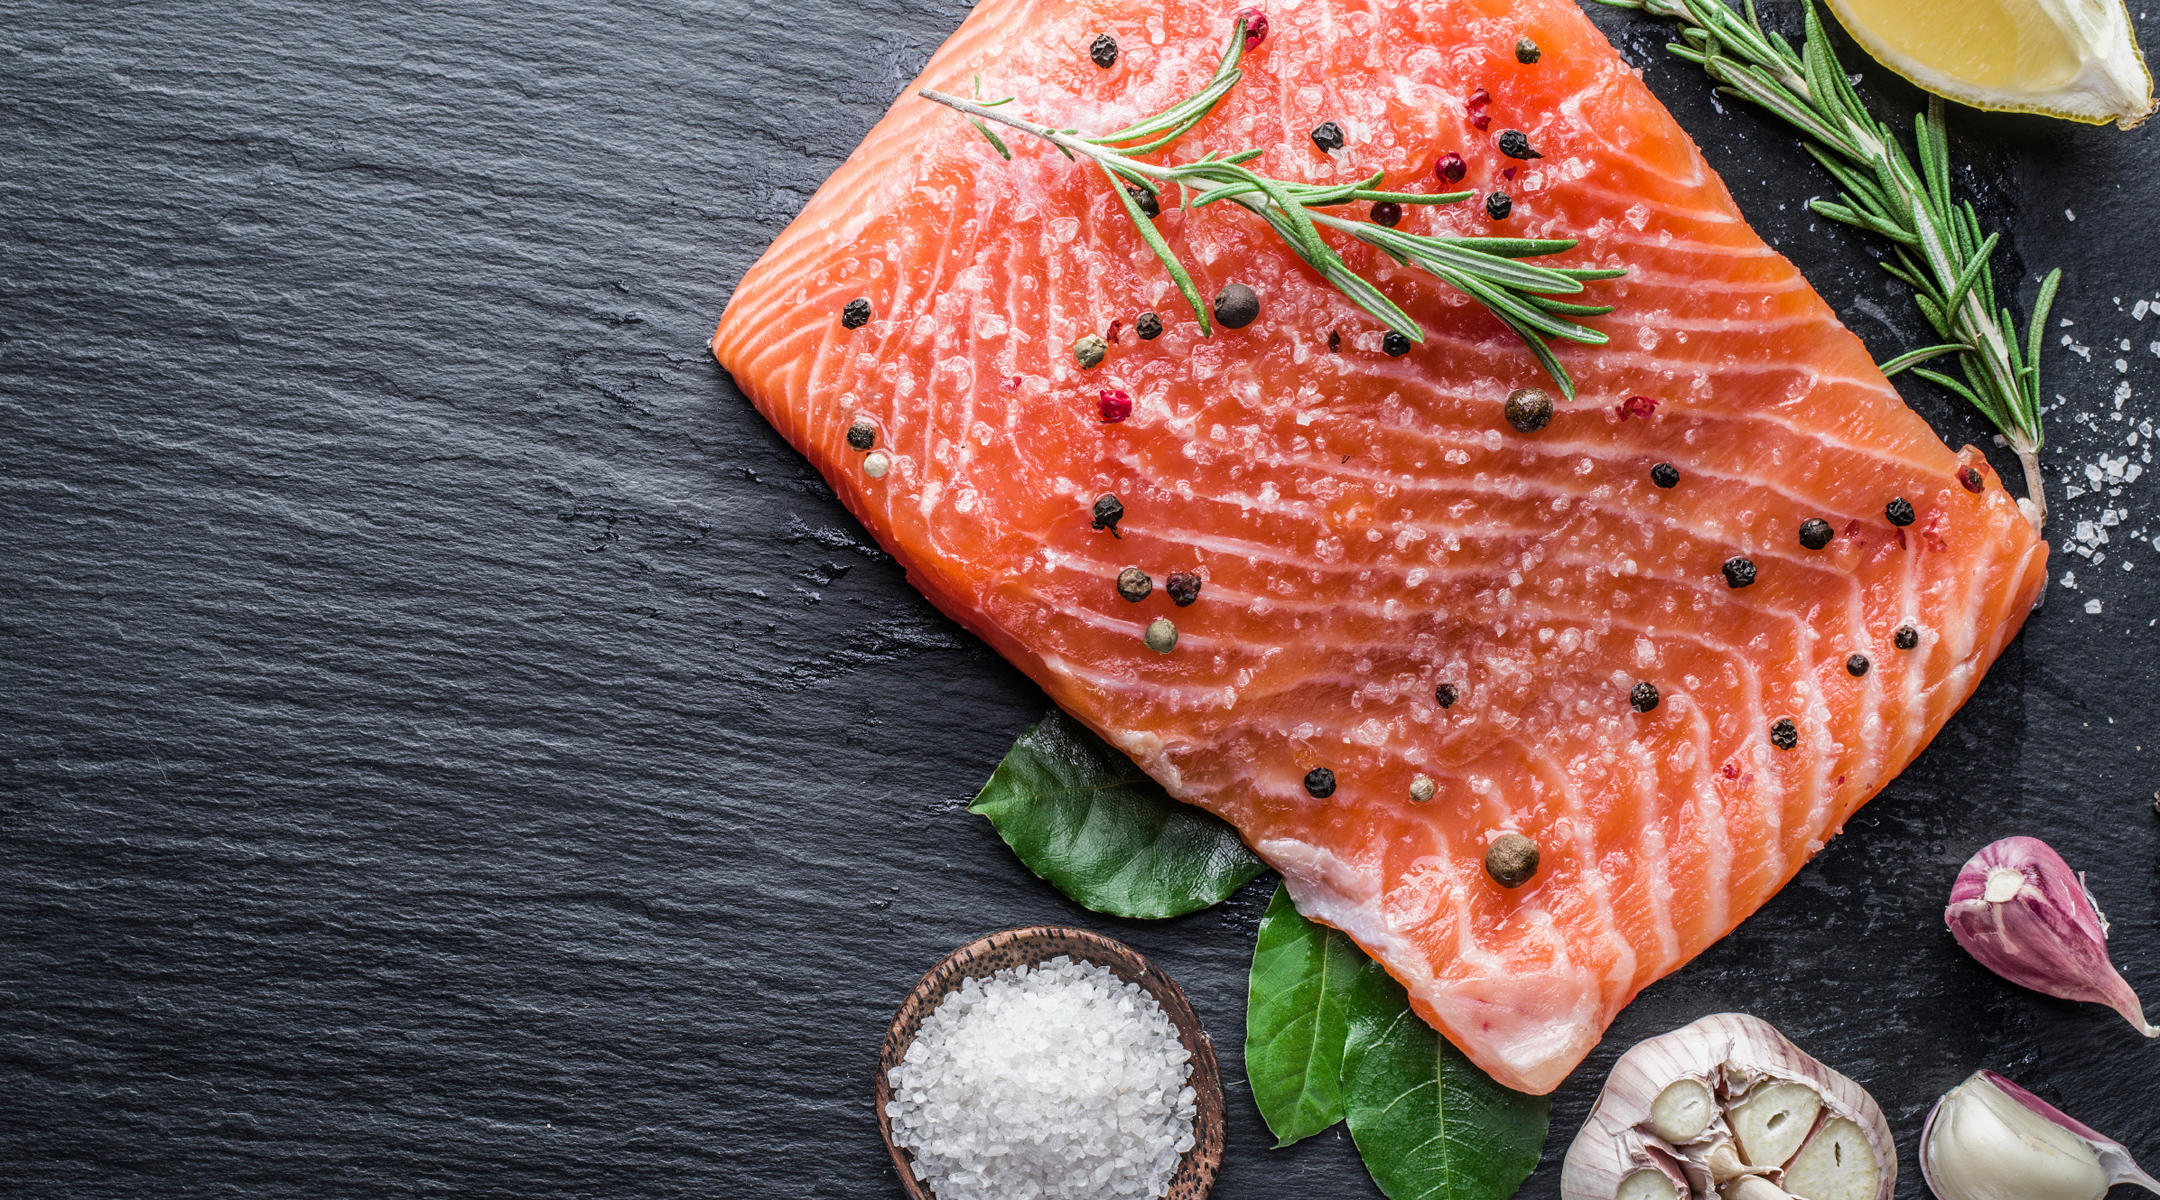 Protects brain health | 7 Health Benefits of Salmon | Her Beauty